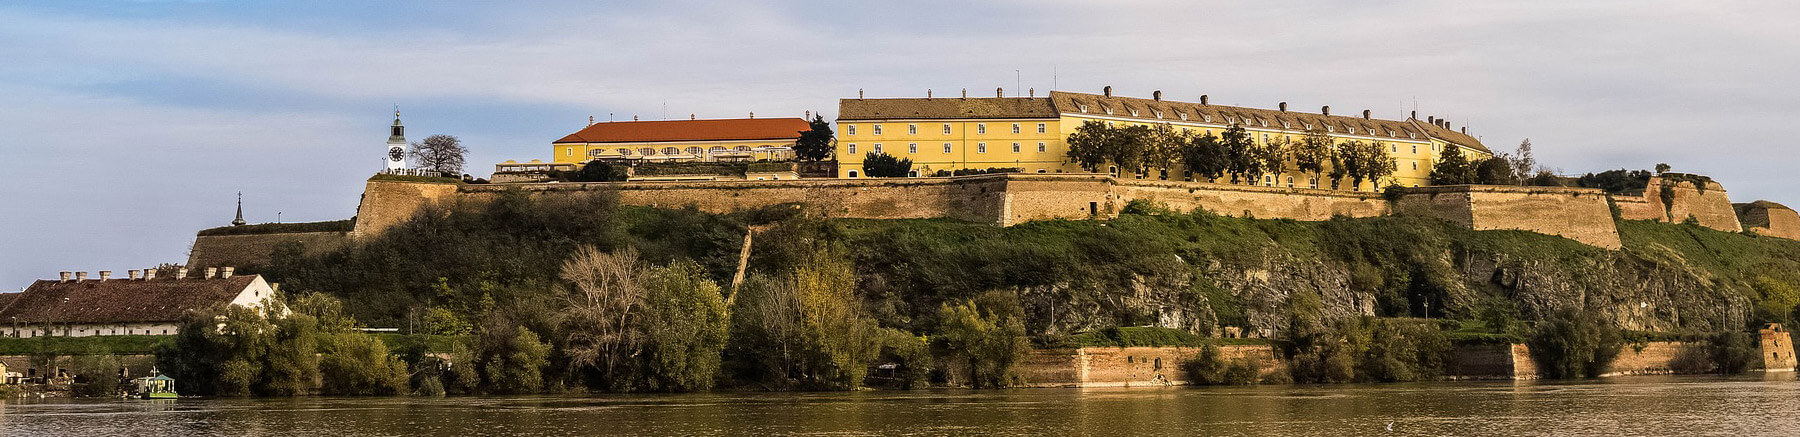 Petrovaradin Fortress in the City of Novi Sad, Serbia